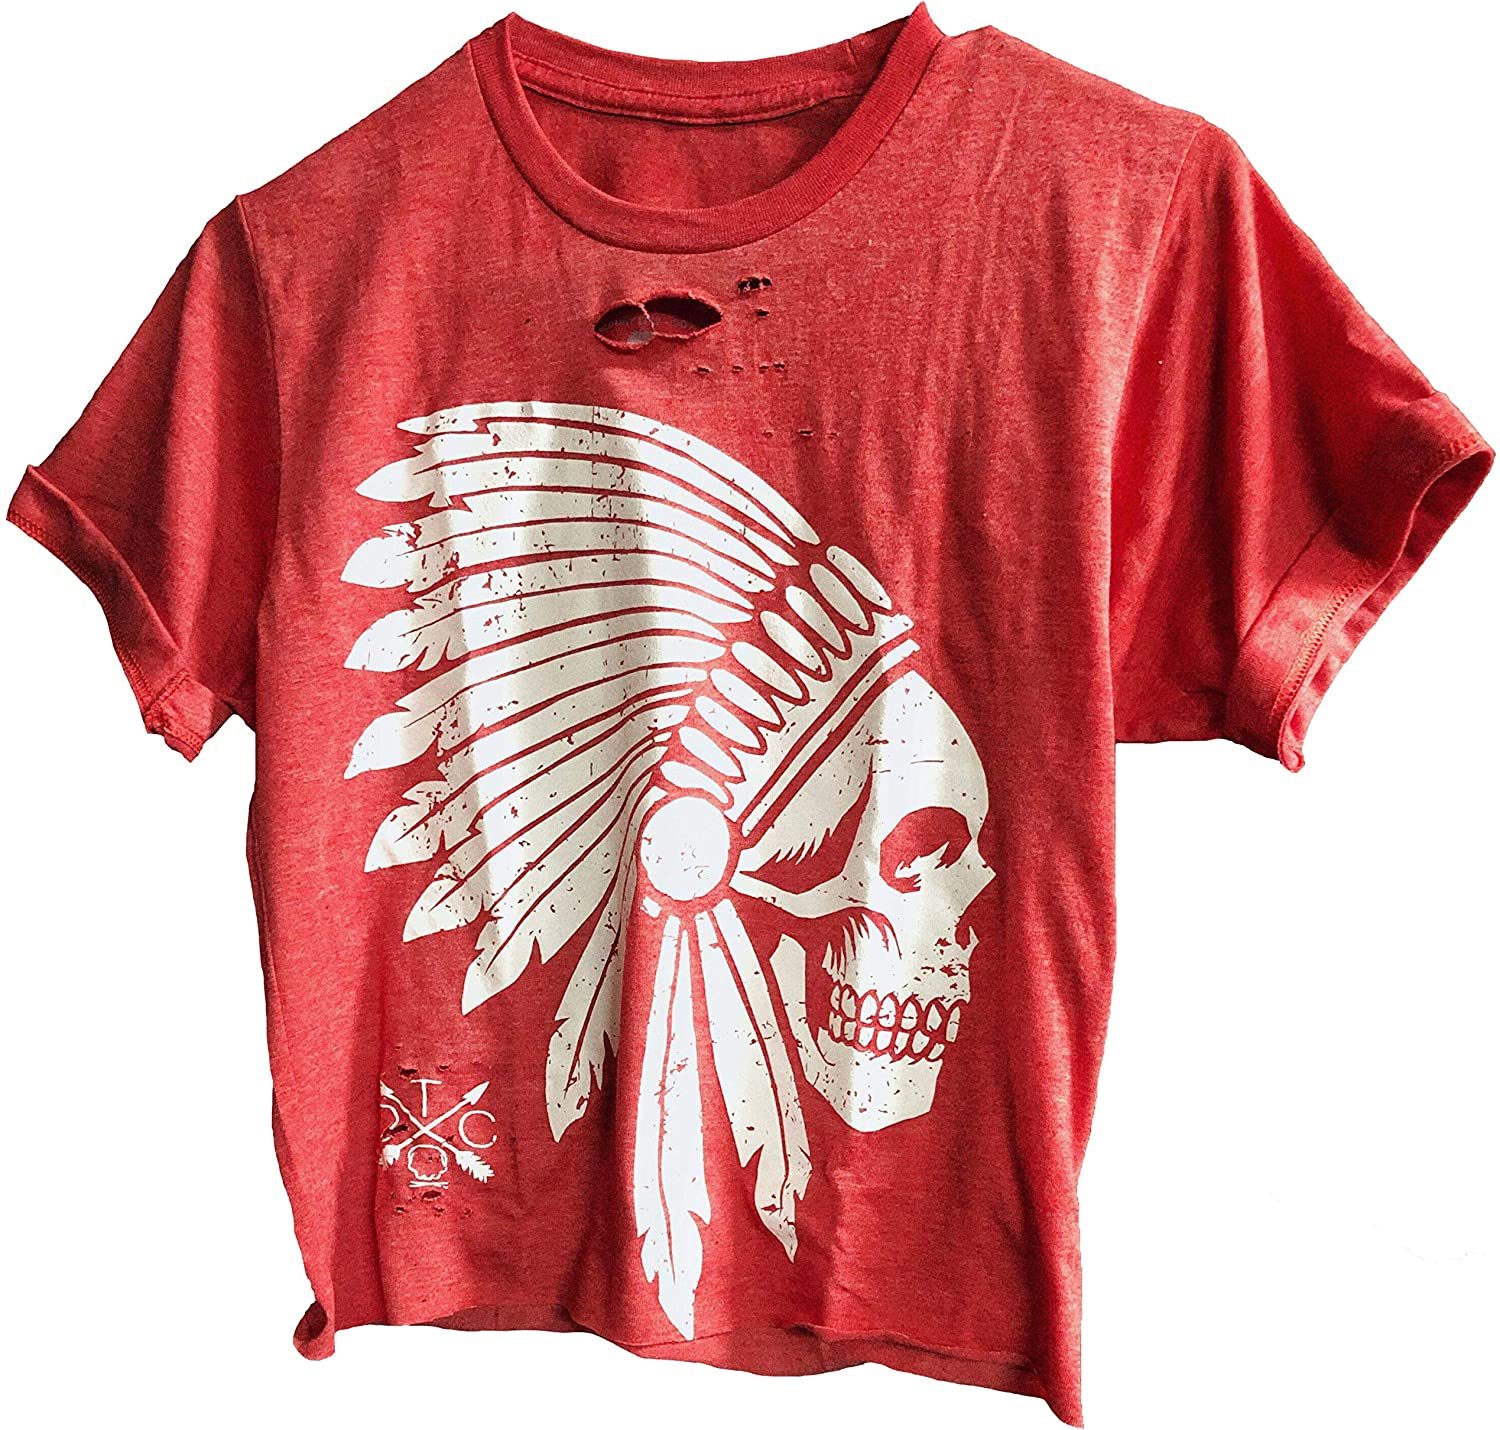 The Drive Clothing Apache Crop Top - Road Rash Collection 189